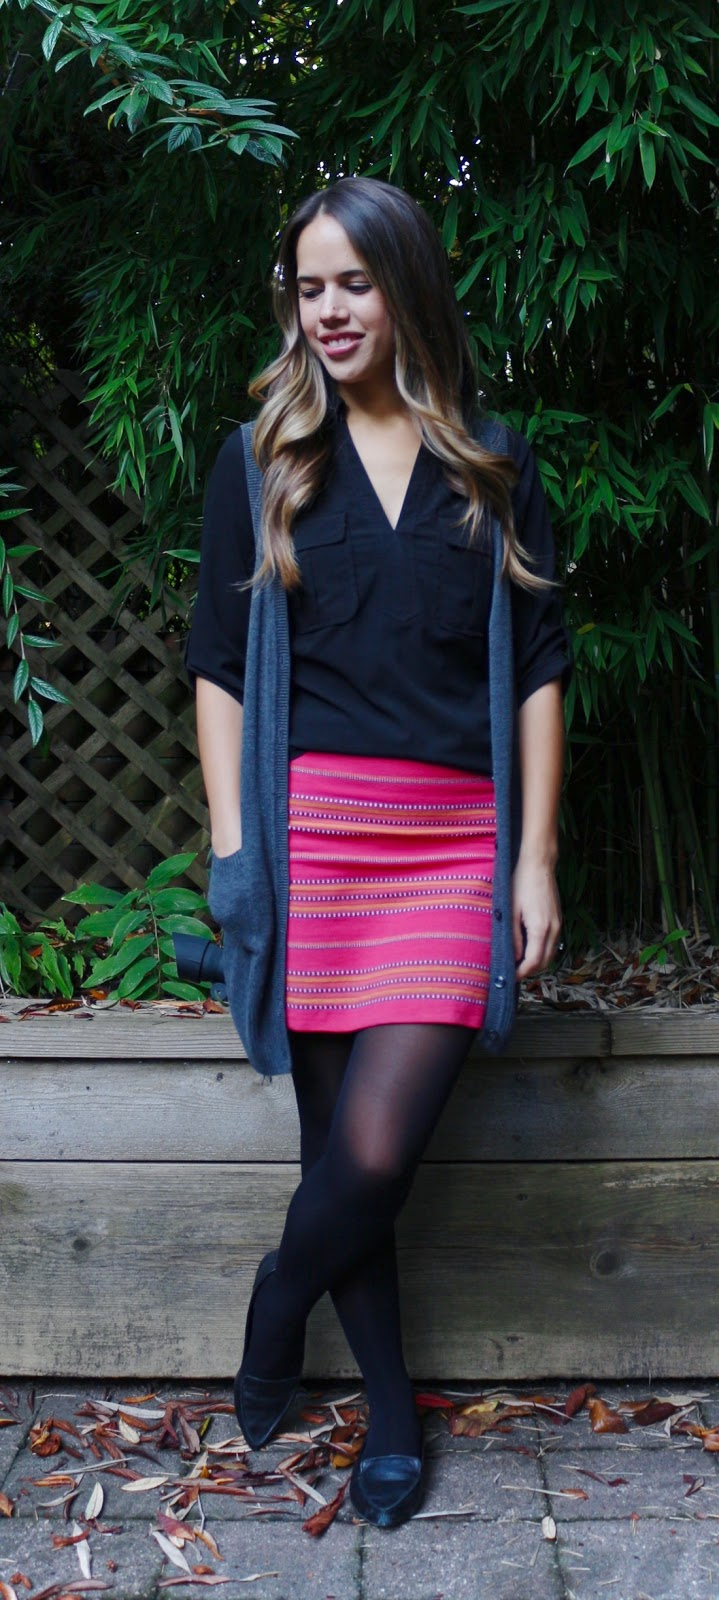 Jules in Flats - Fuschia Stripe Mini Skirt with Sweater Vest (Business Casual Fall Workwear on a Budget)